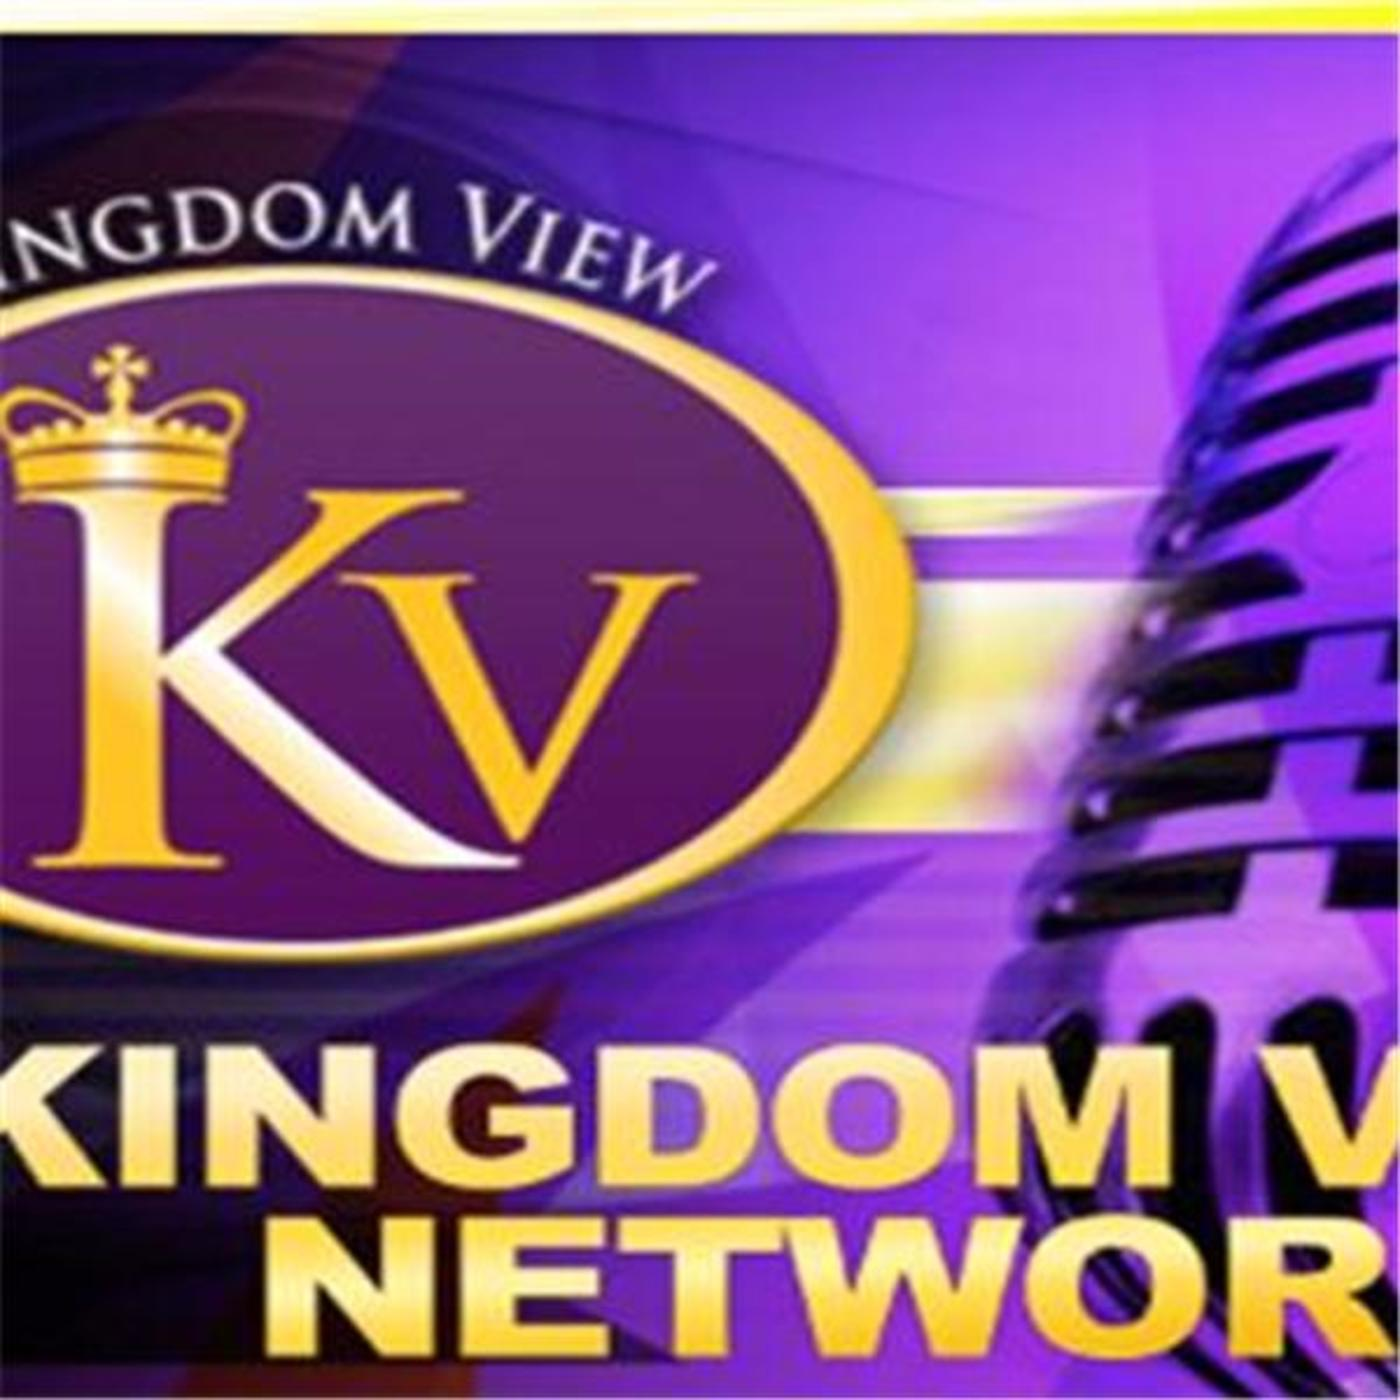 Kingdom View Network & Friends